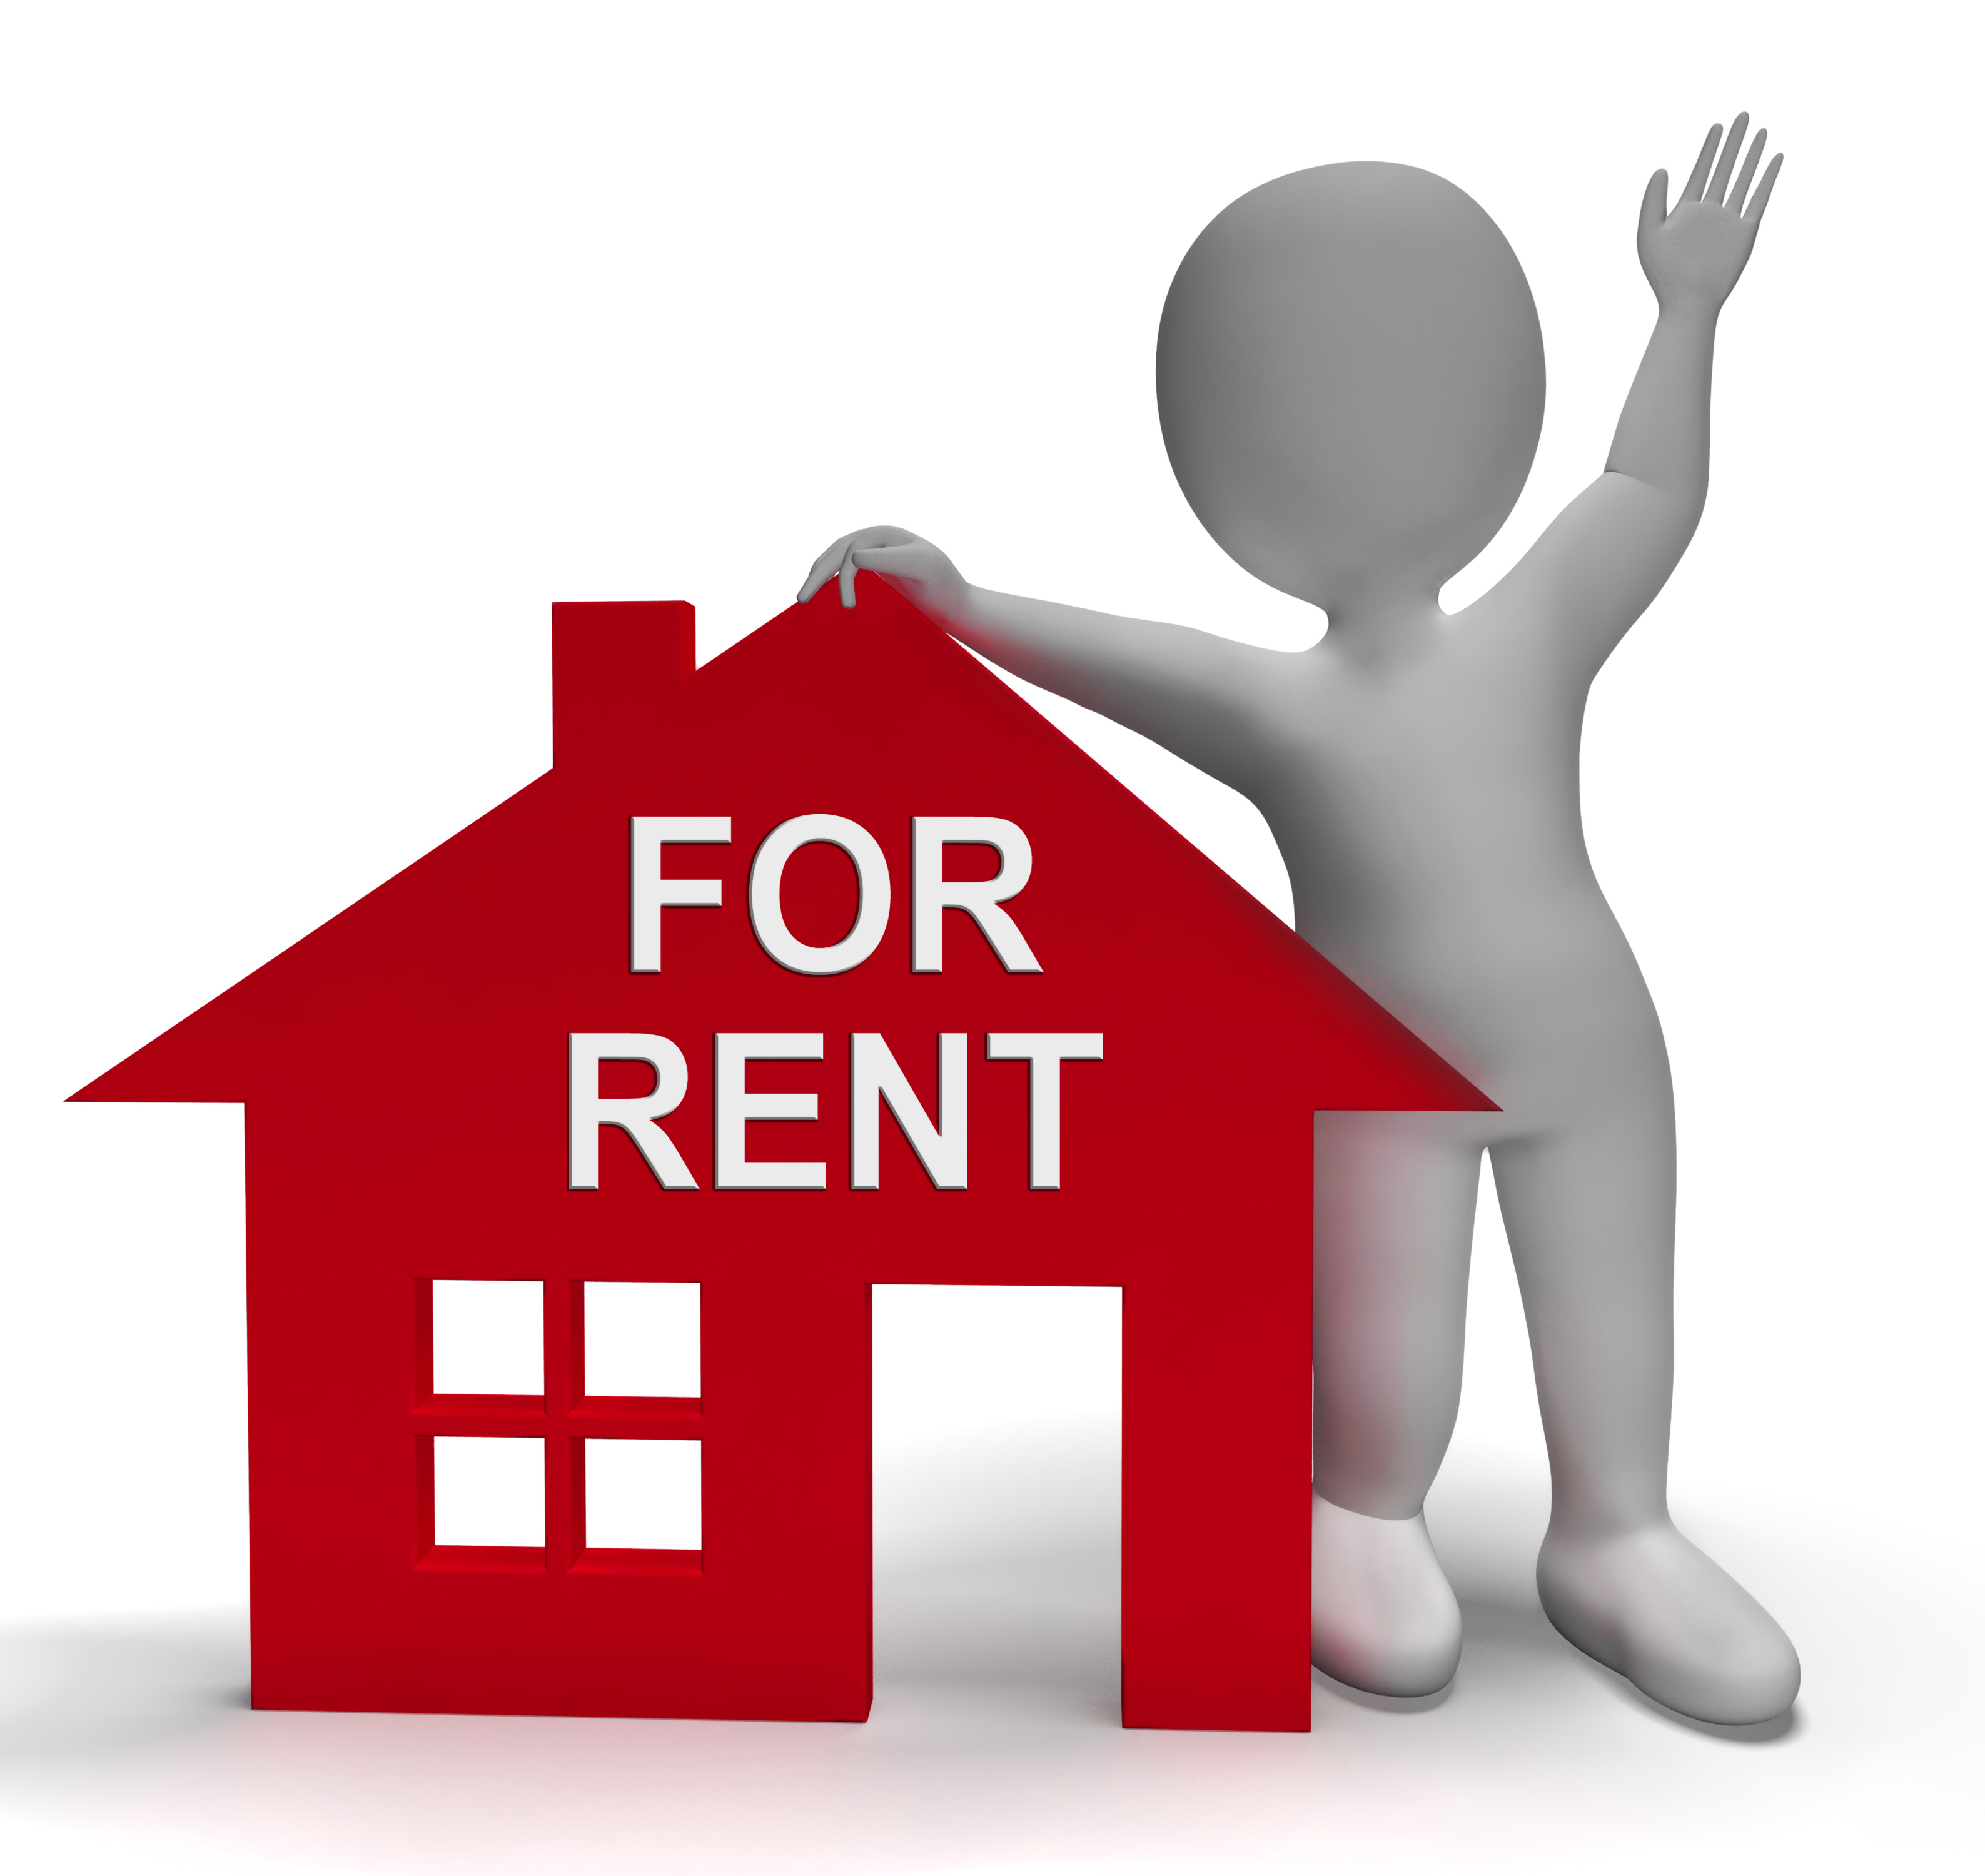 For Rent House Showing Rental Or Lease Property